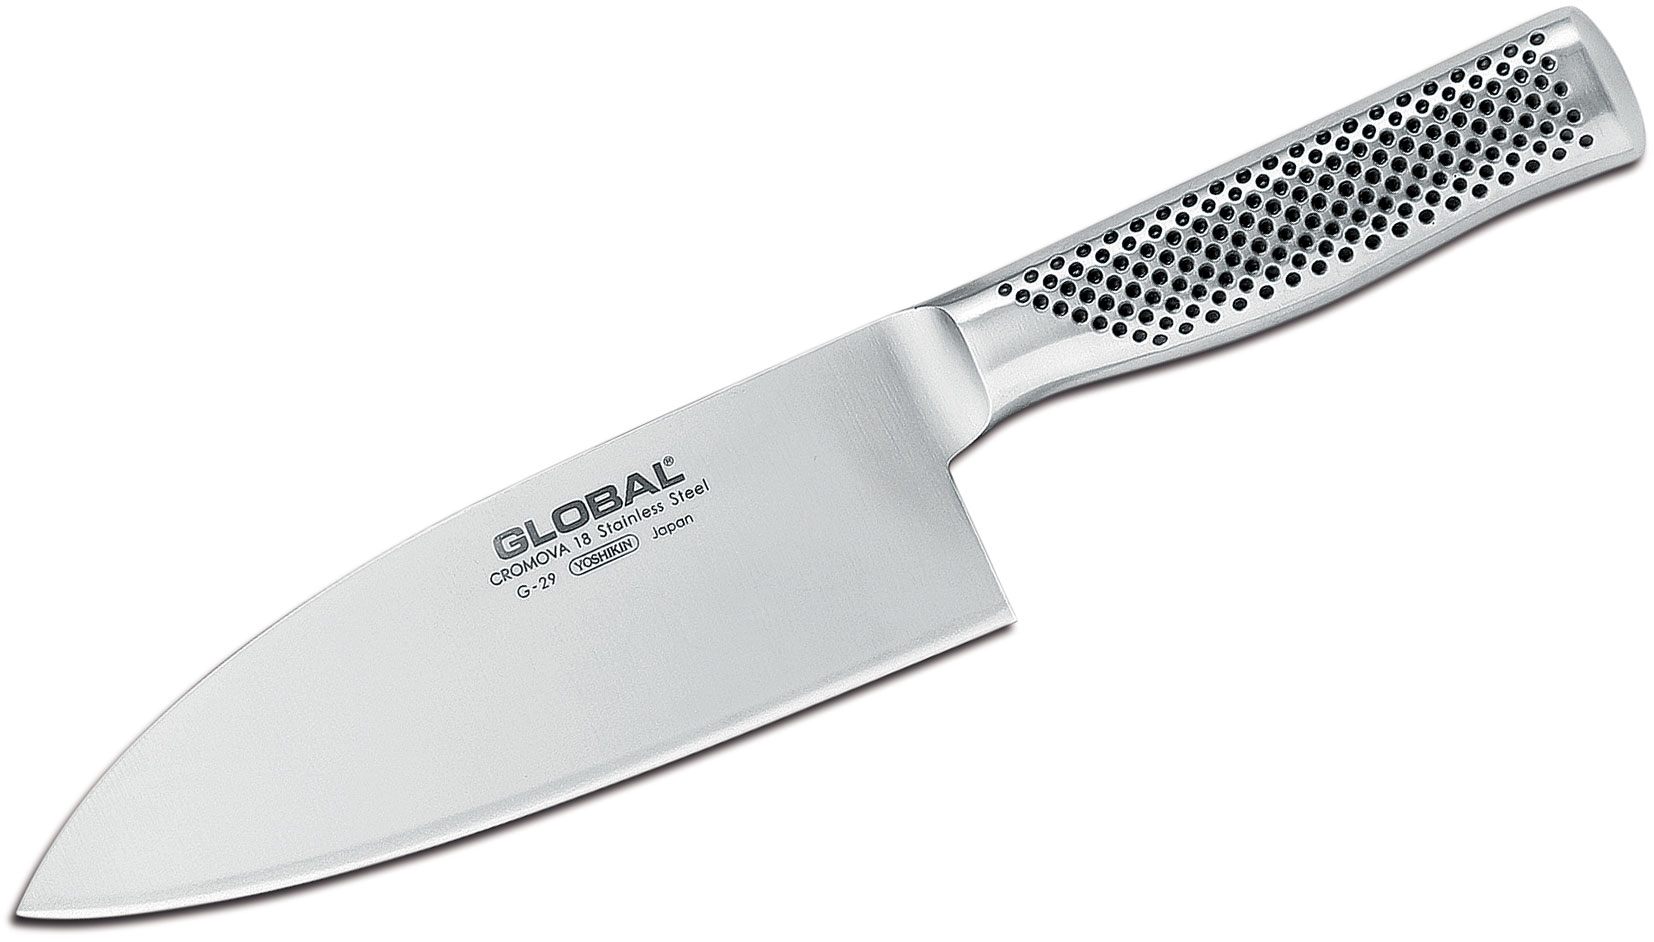 Global G-29 Classic 7 inch Wide Chef's Knife